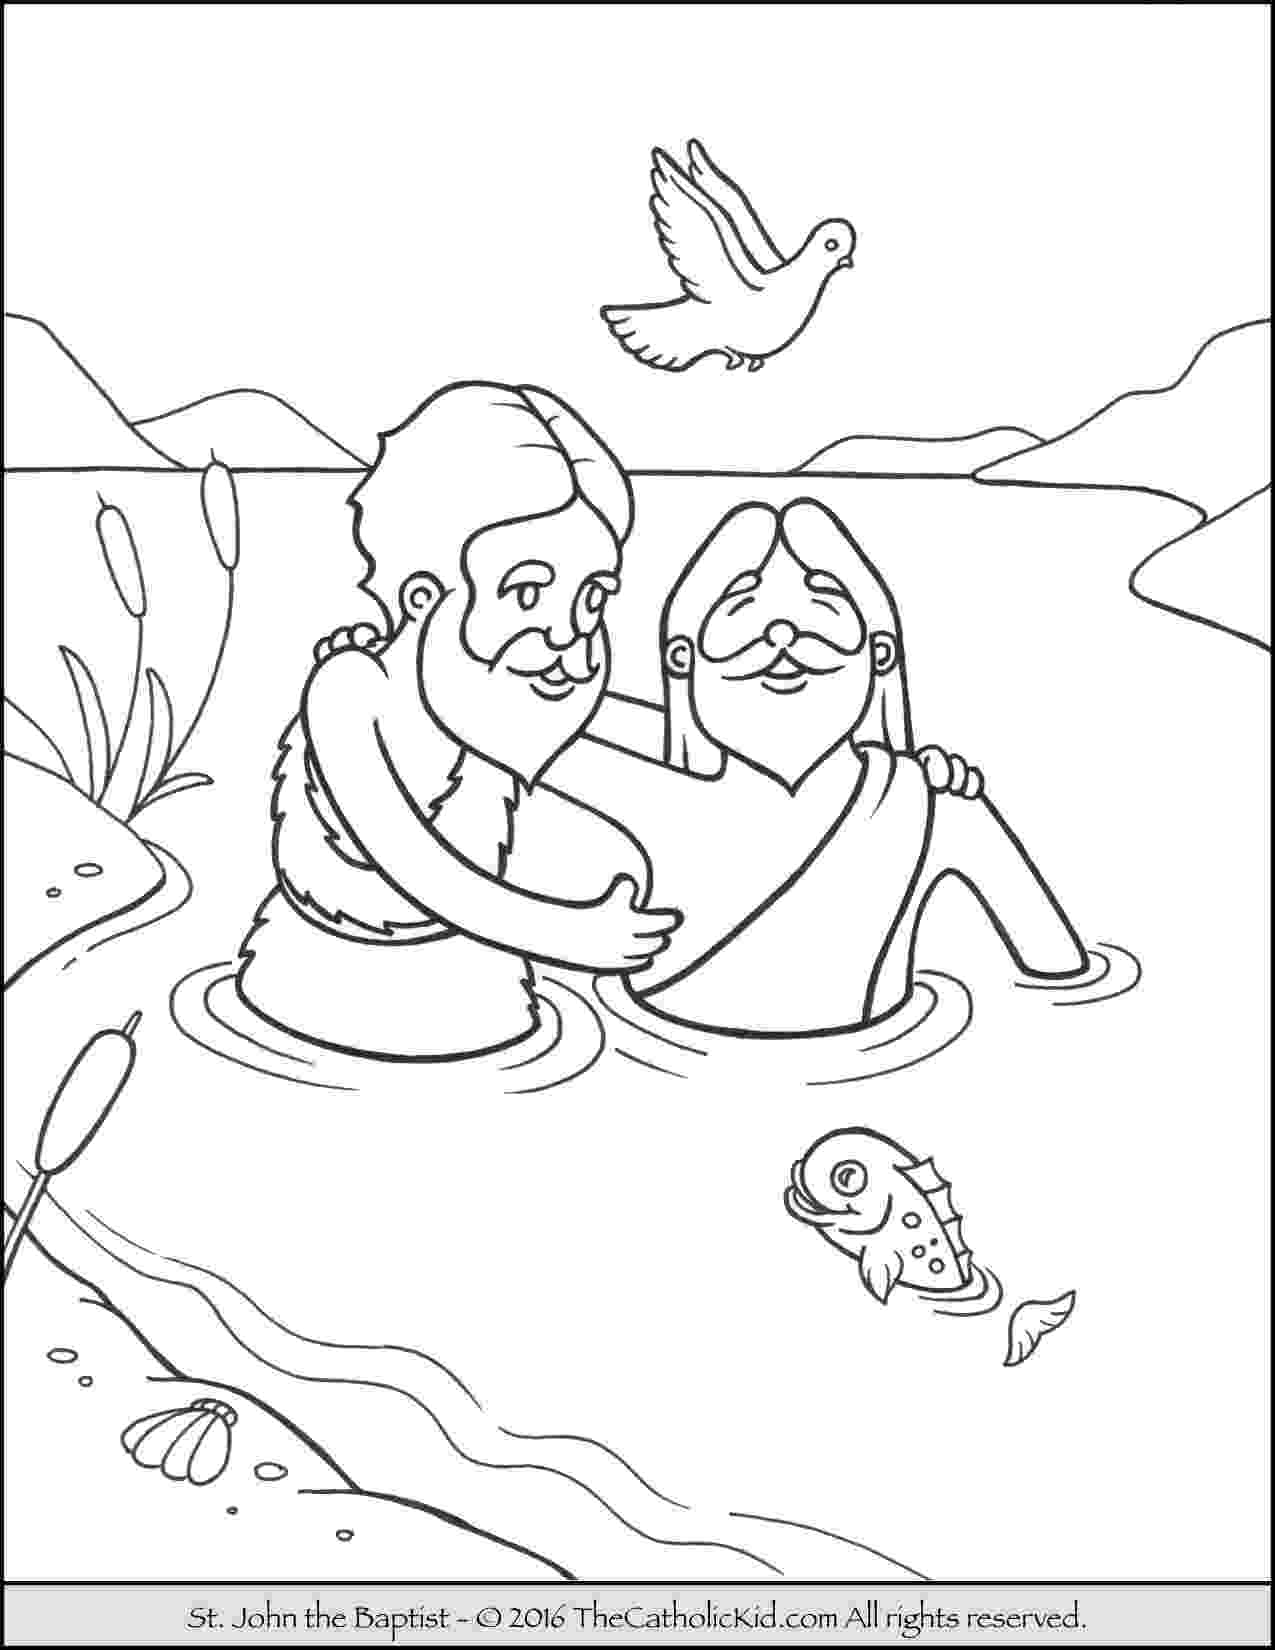 john the baptist coloring pages printable bible coloring page for sunday school john the baptist coloring printable john the pages baptist